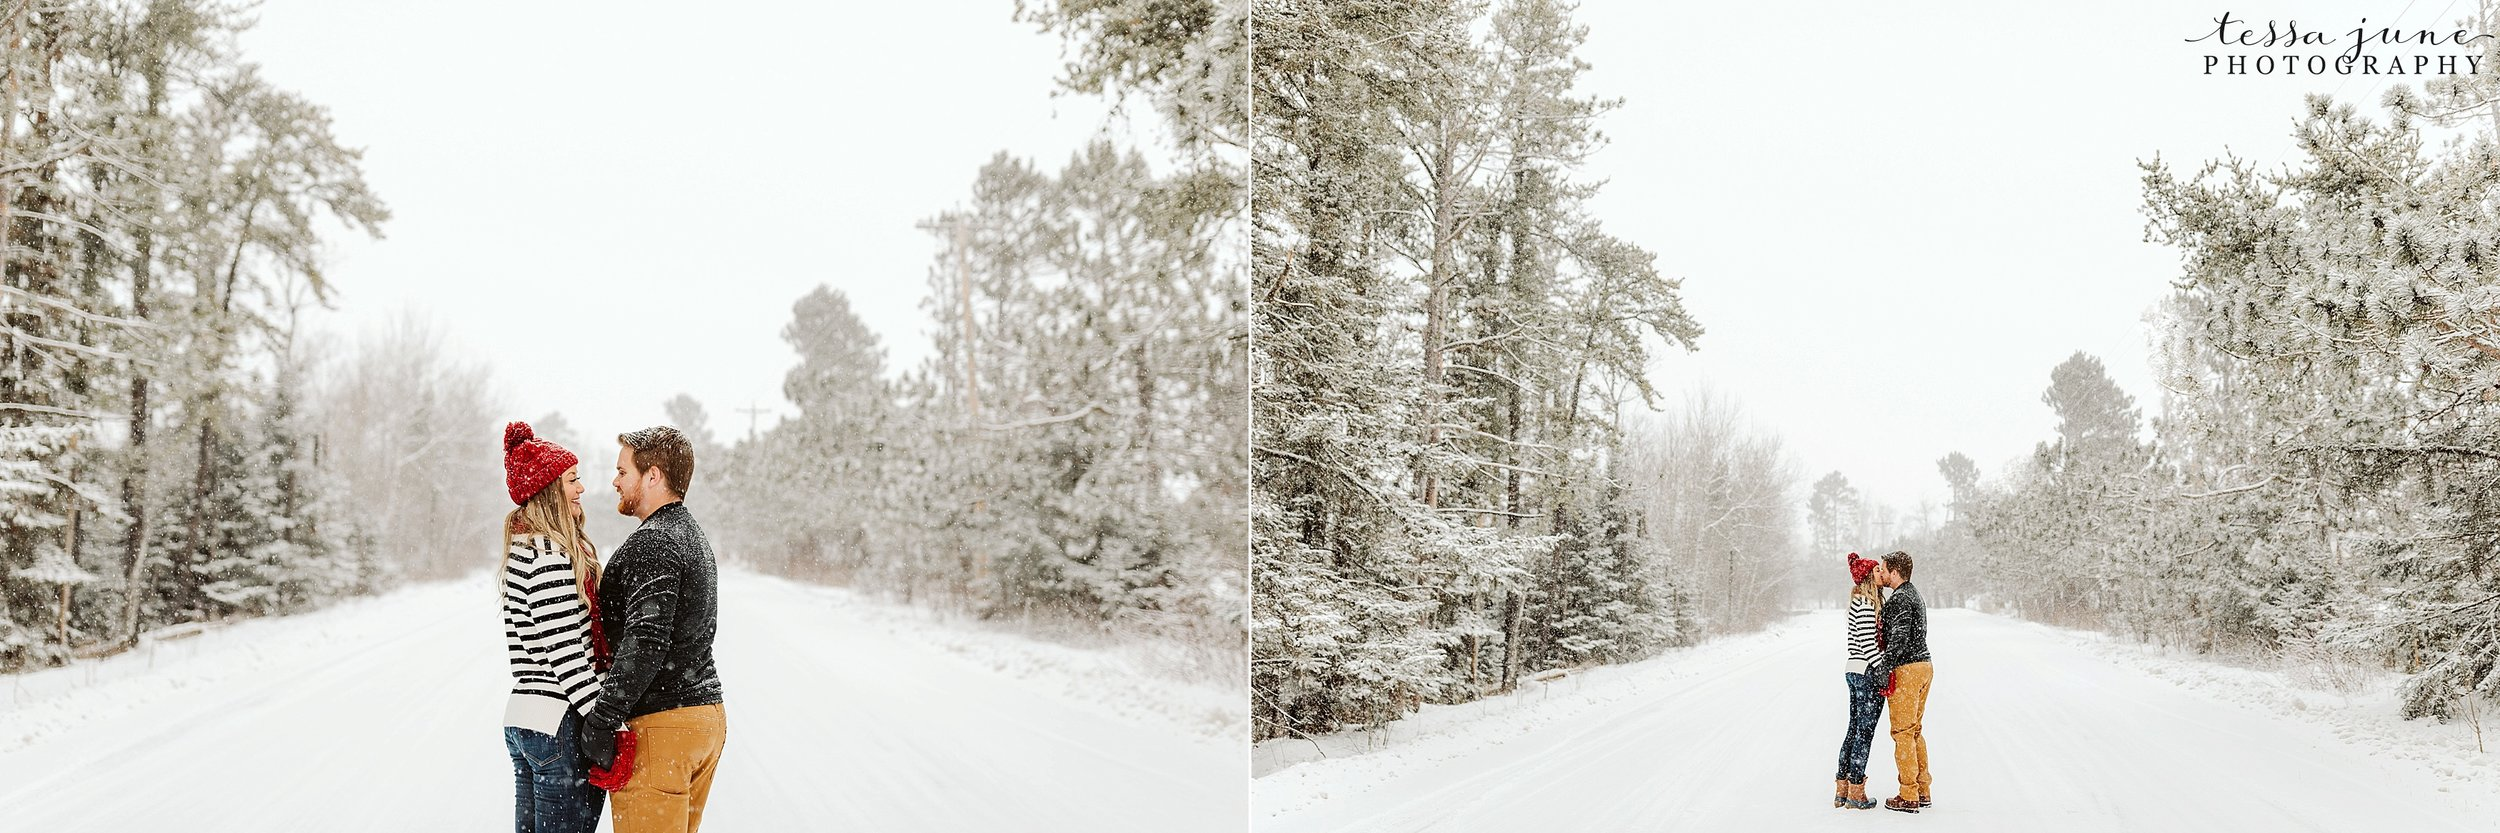 duluth-winter-engagement-forest-photos-during-snow-storm-40.jpg